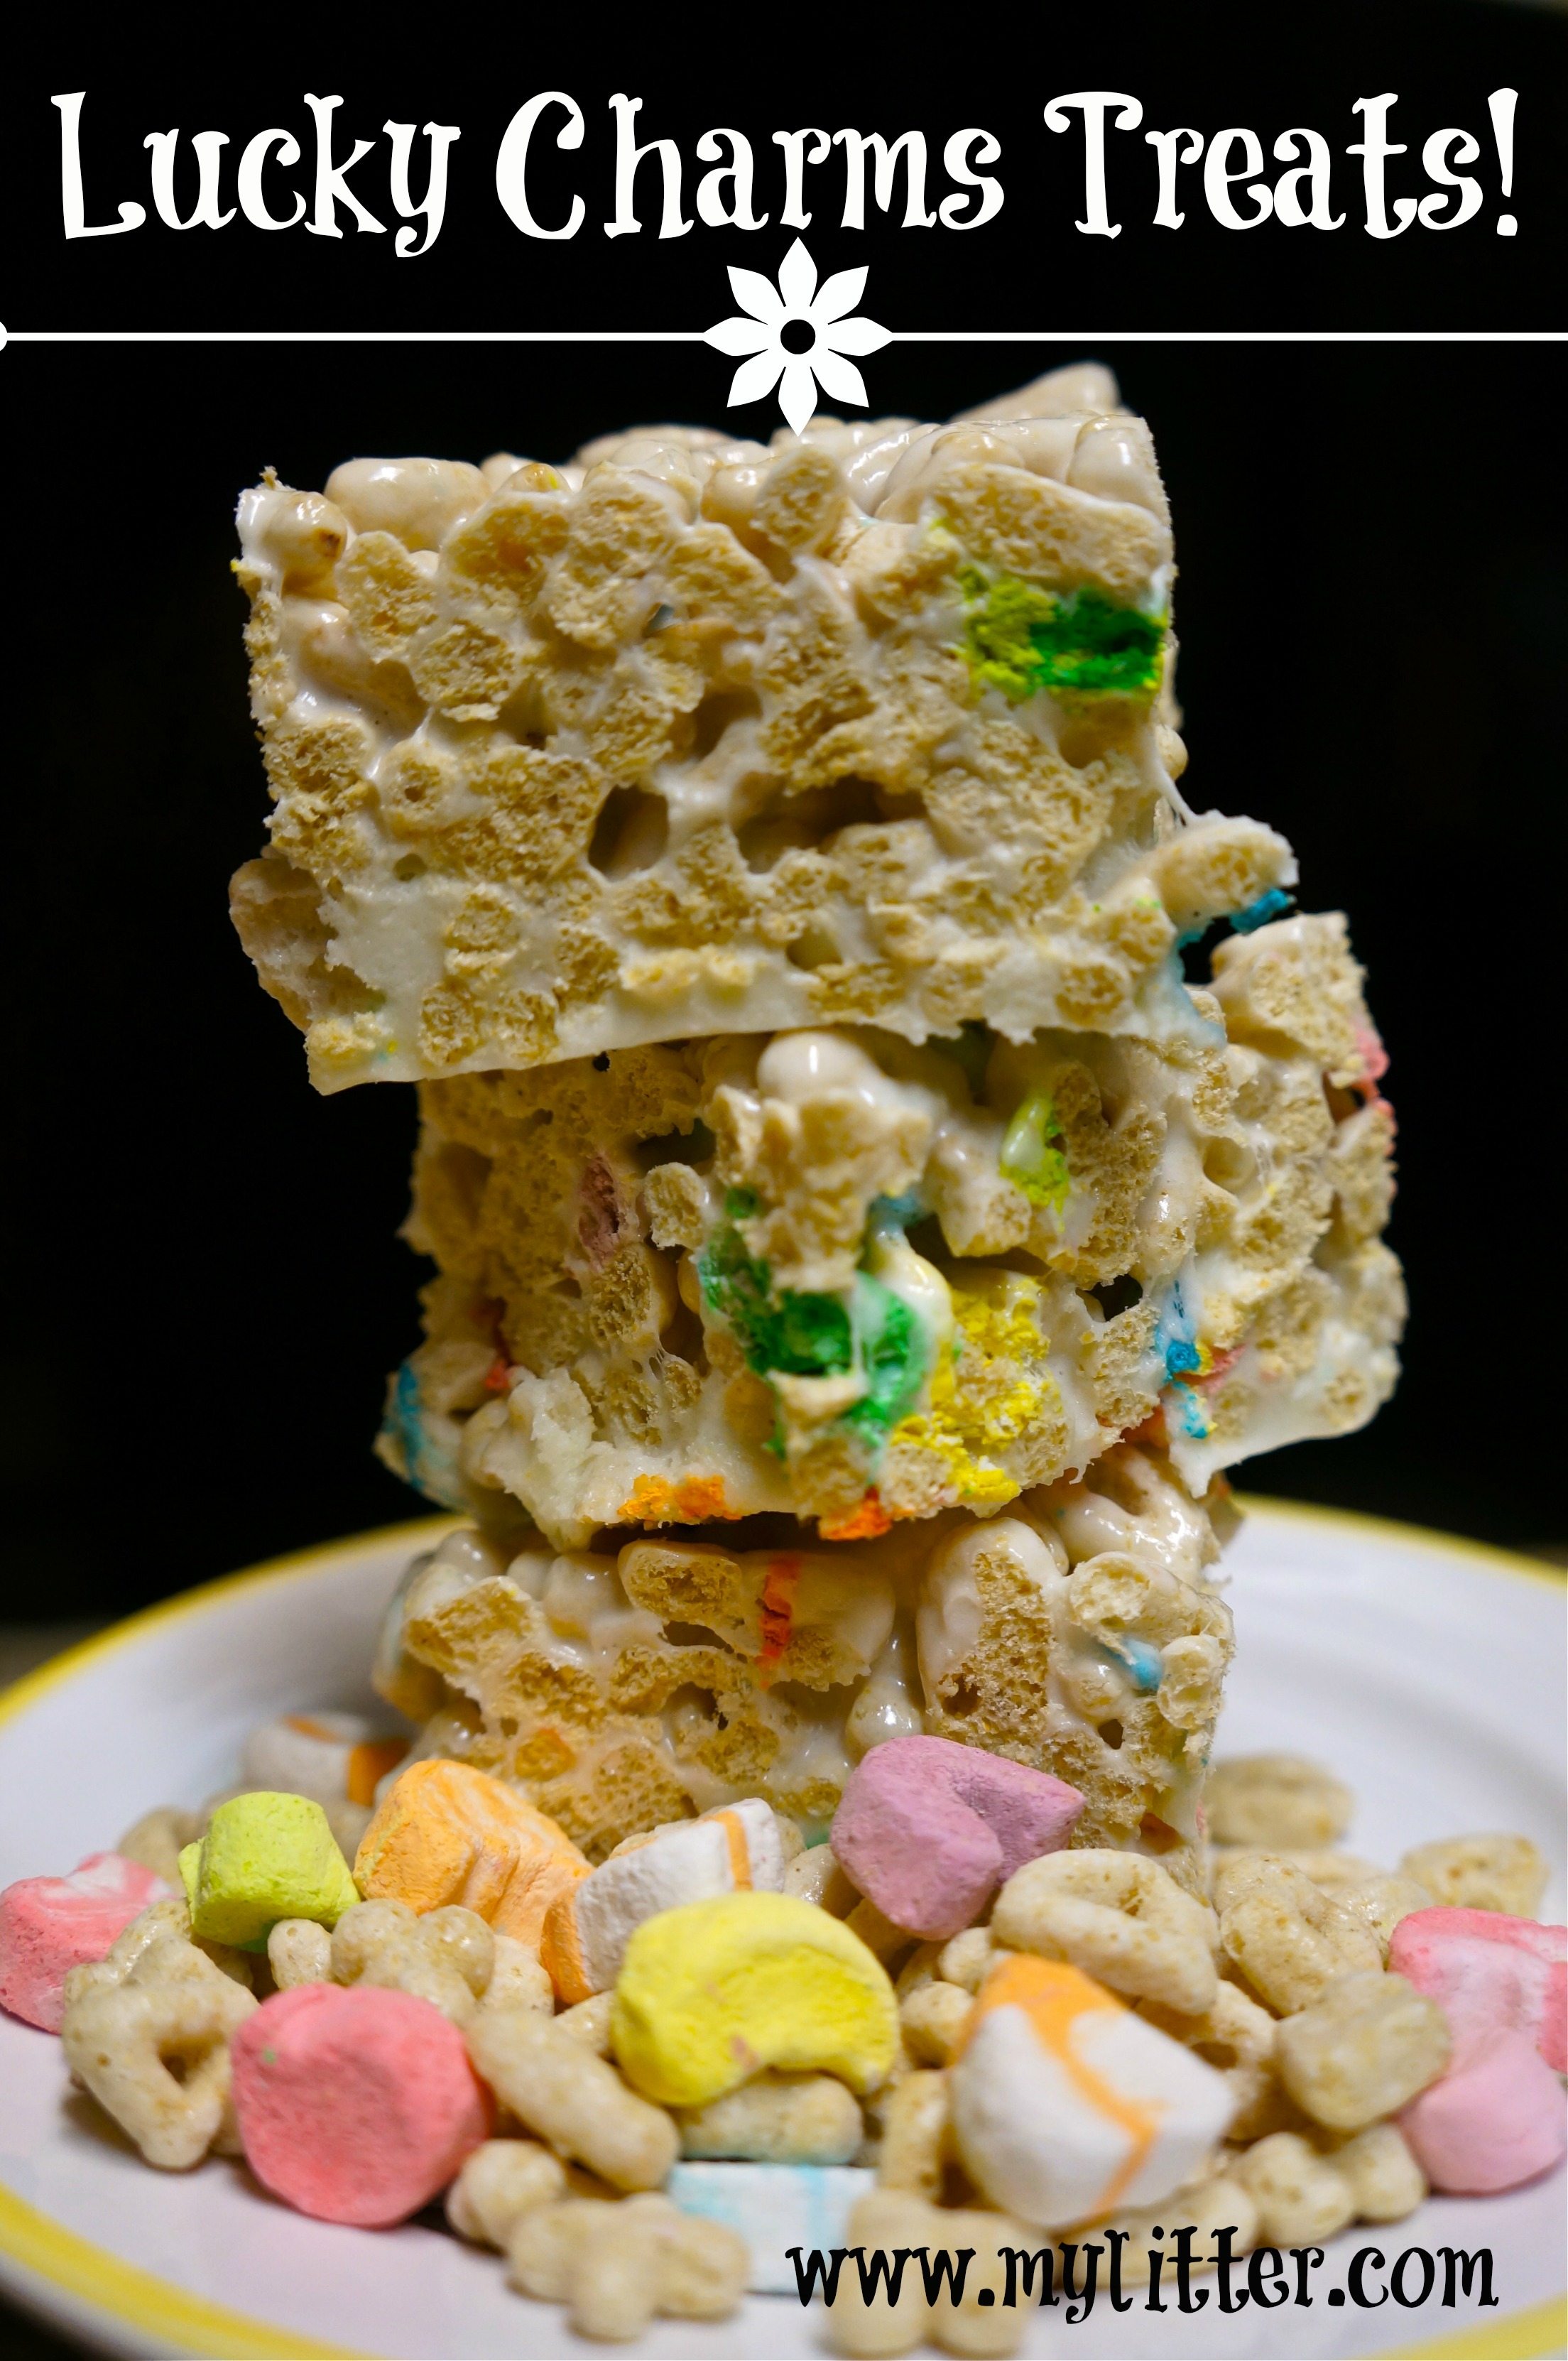 Cereal. Possibly everyone's FAVORITE convenience food, but definitely one of the WORST foods you can eat, especially in the morning. The commercials and .